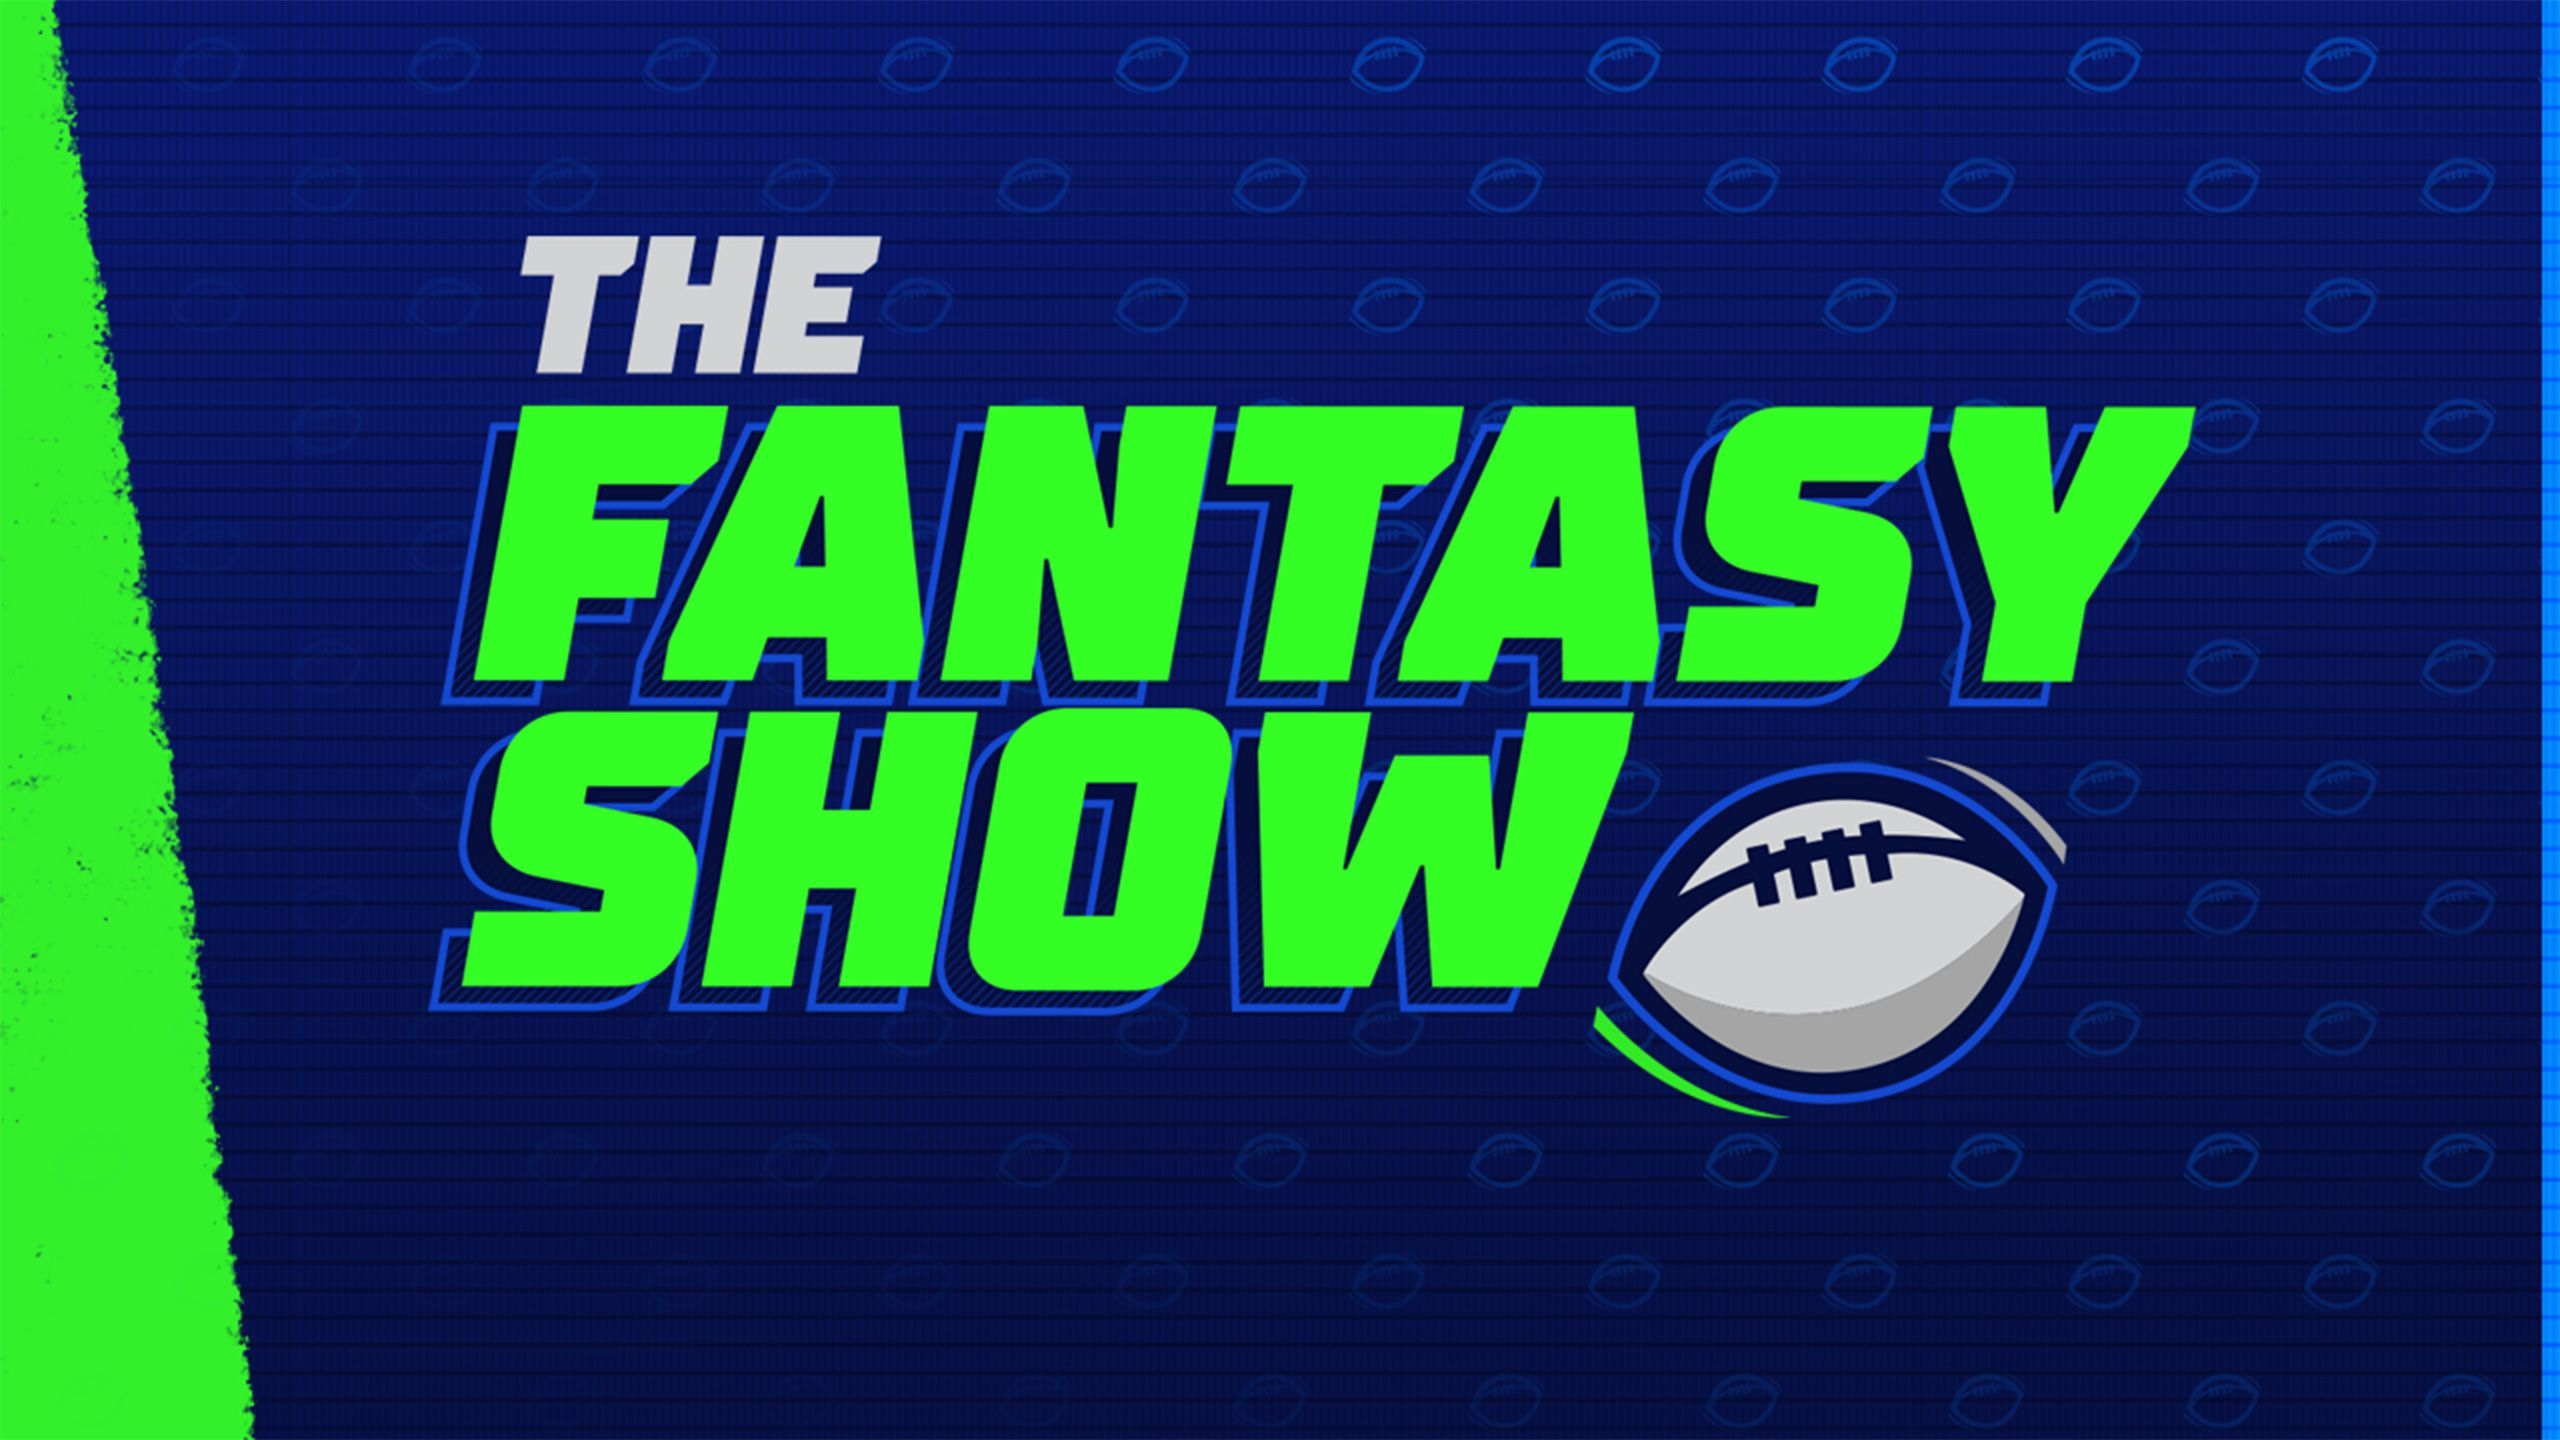 Fri, 12/8 - The Fantasy Show presented by E*Trade